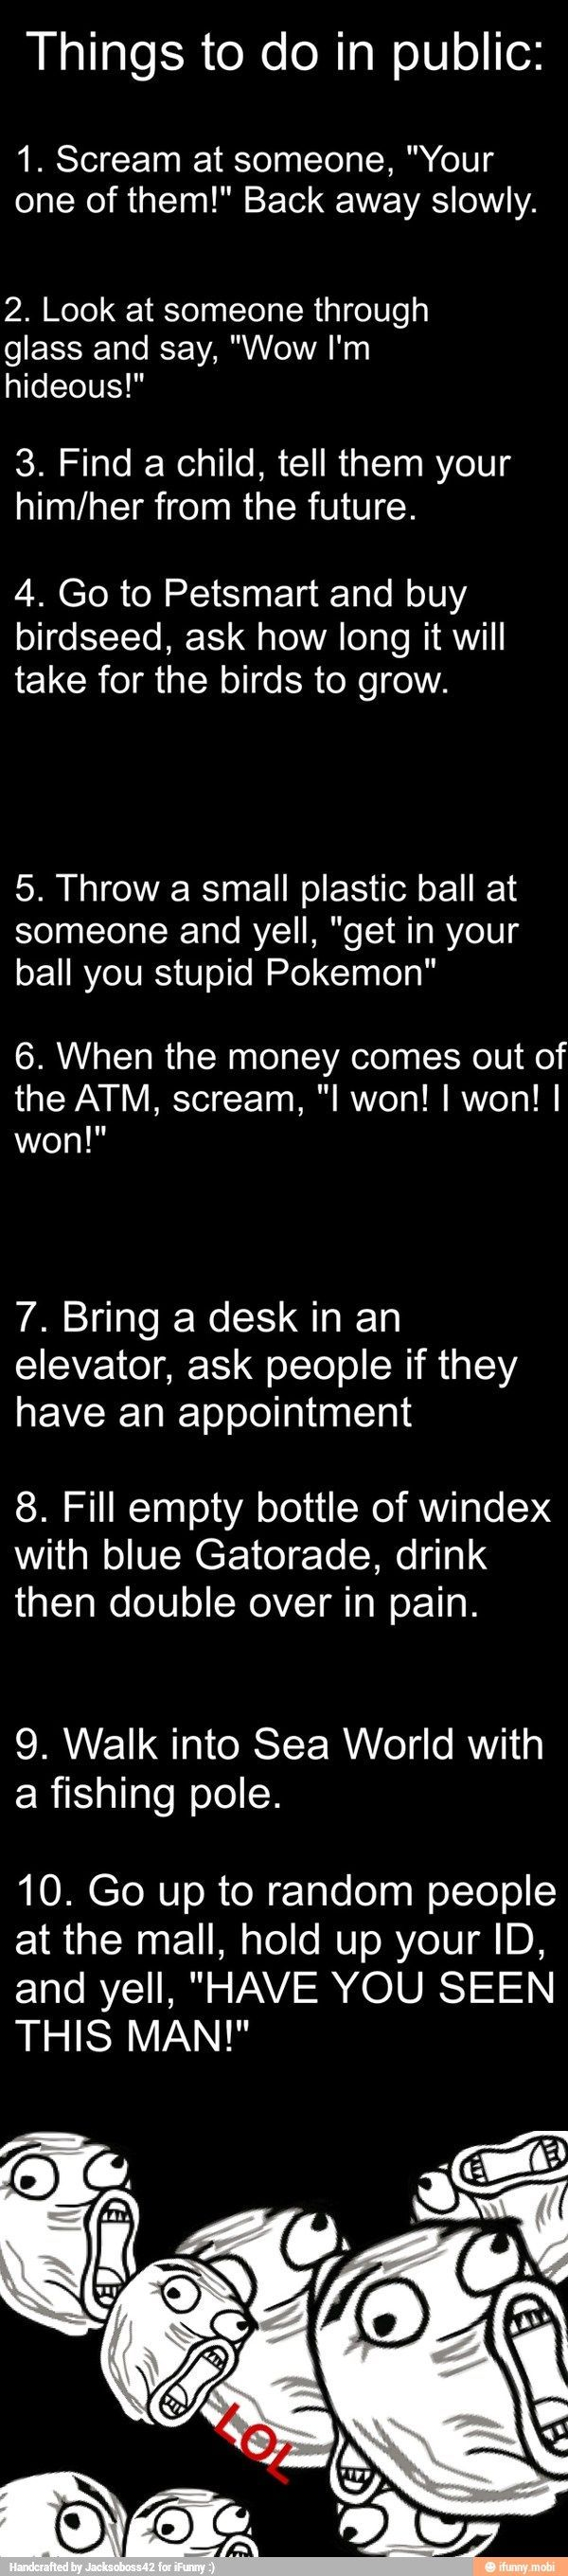 I may have done some of these things before...  ;)